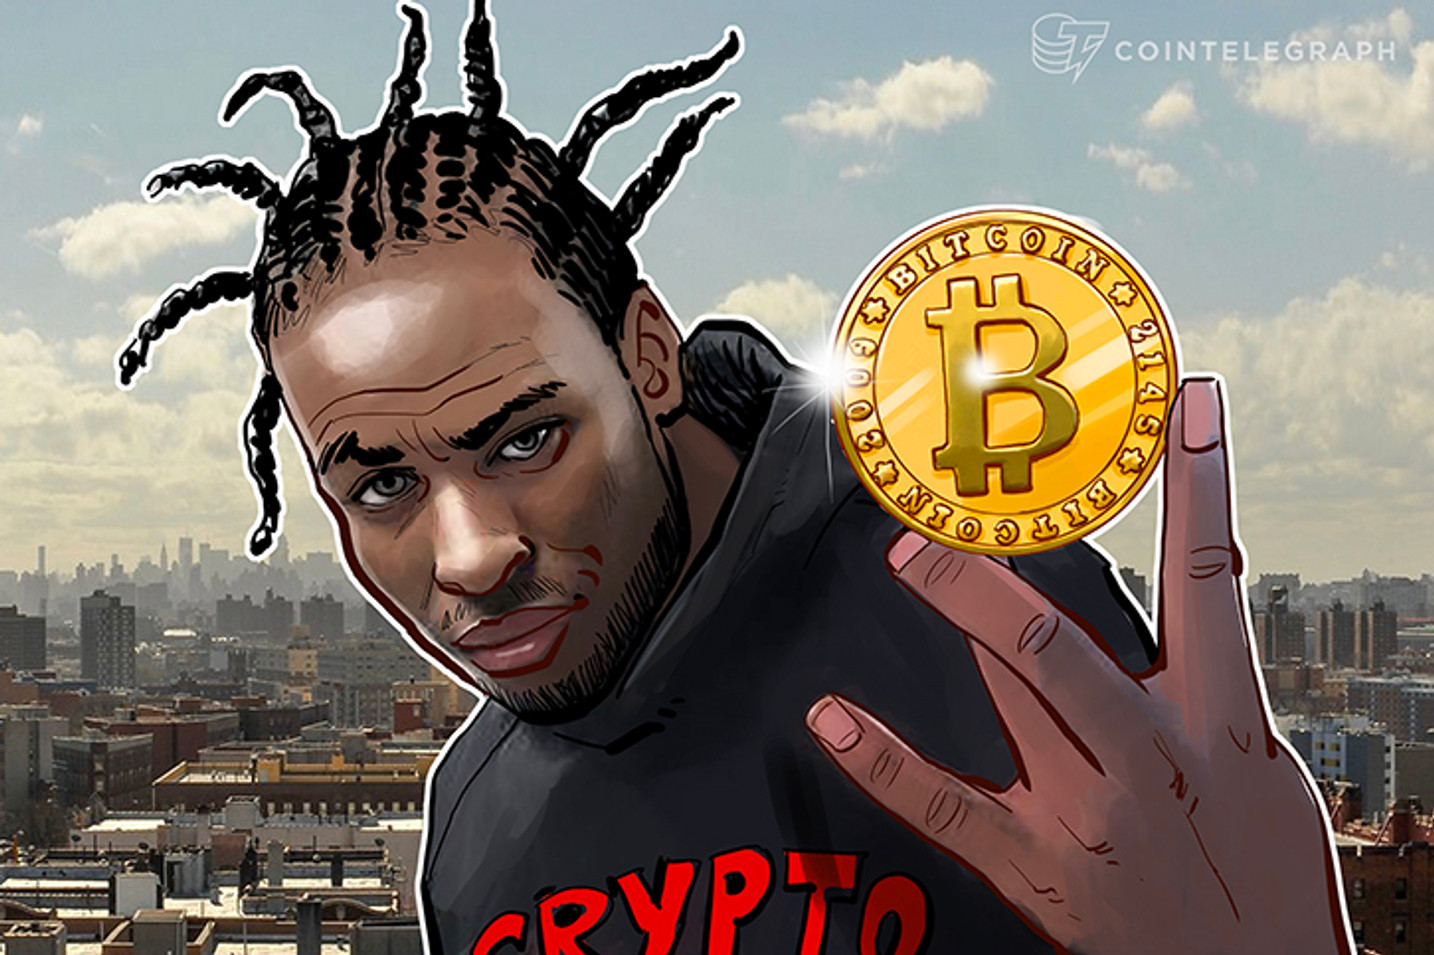 Son Of  Wu-Tang Clan's ODB To Launch Own Coin Via ICO To Support Music, Brand